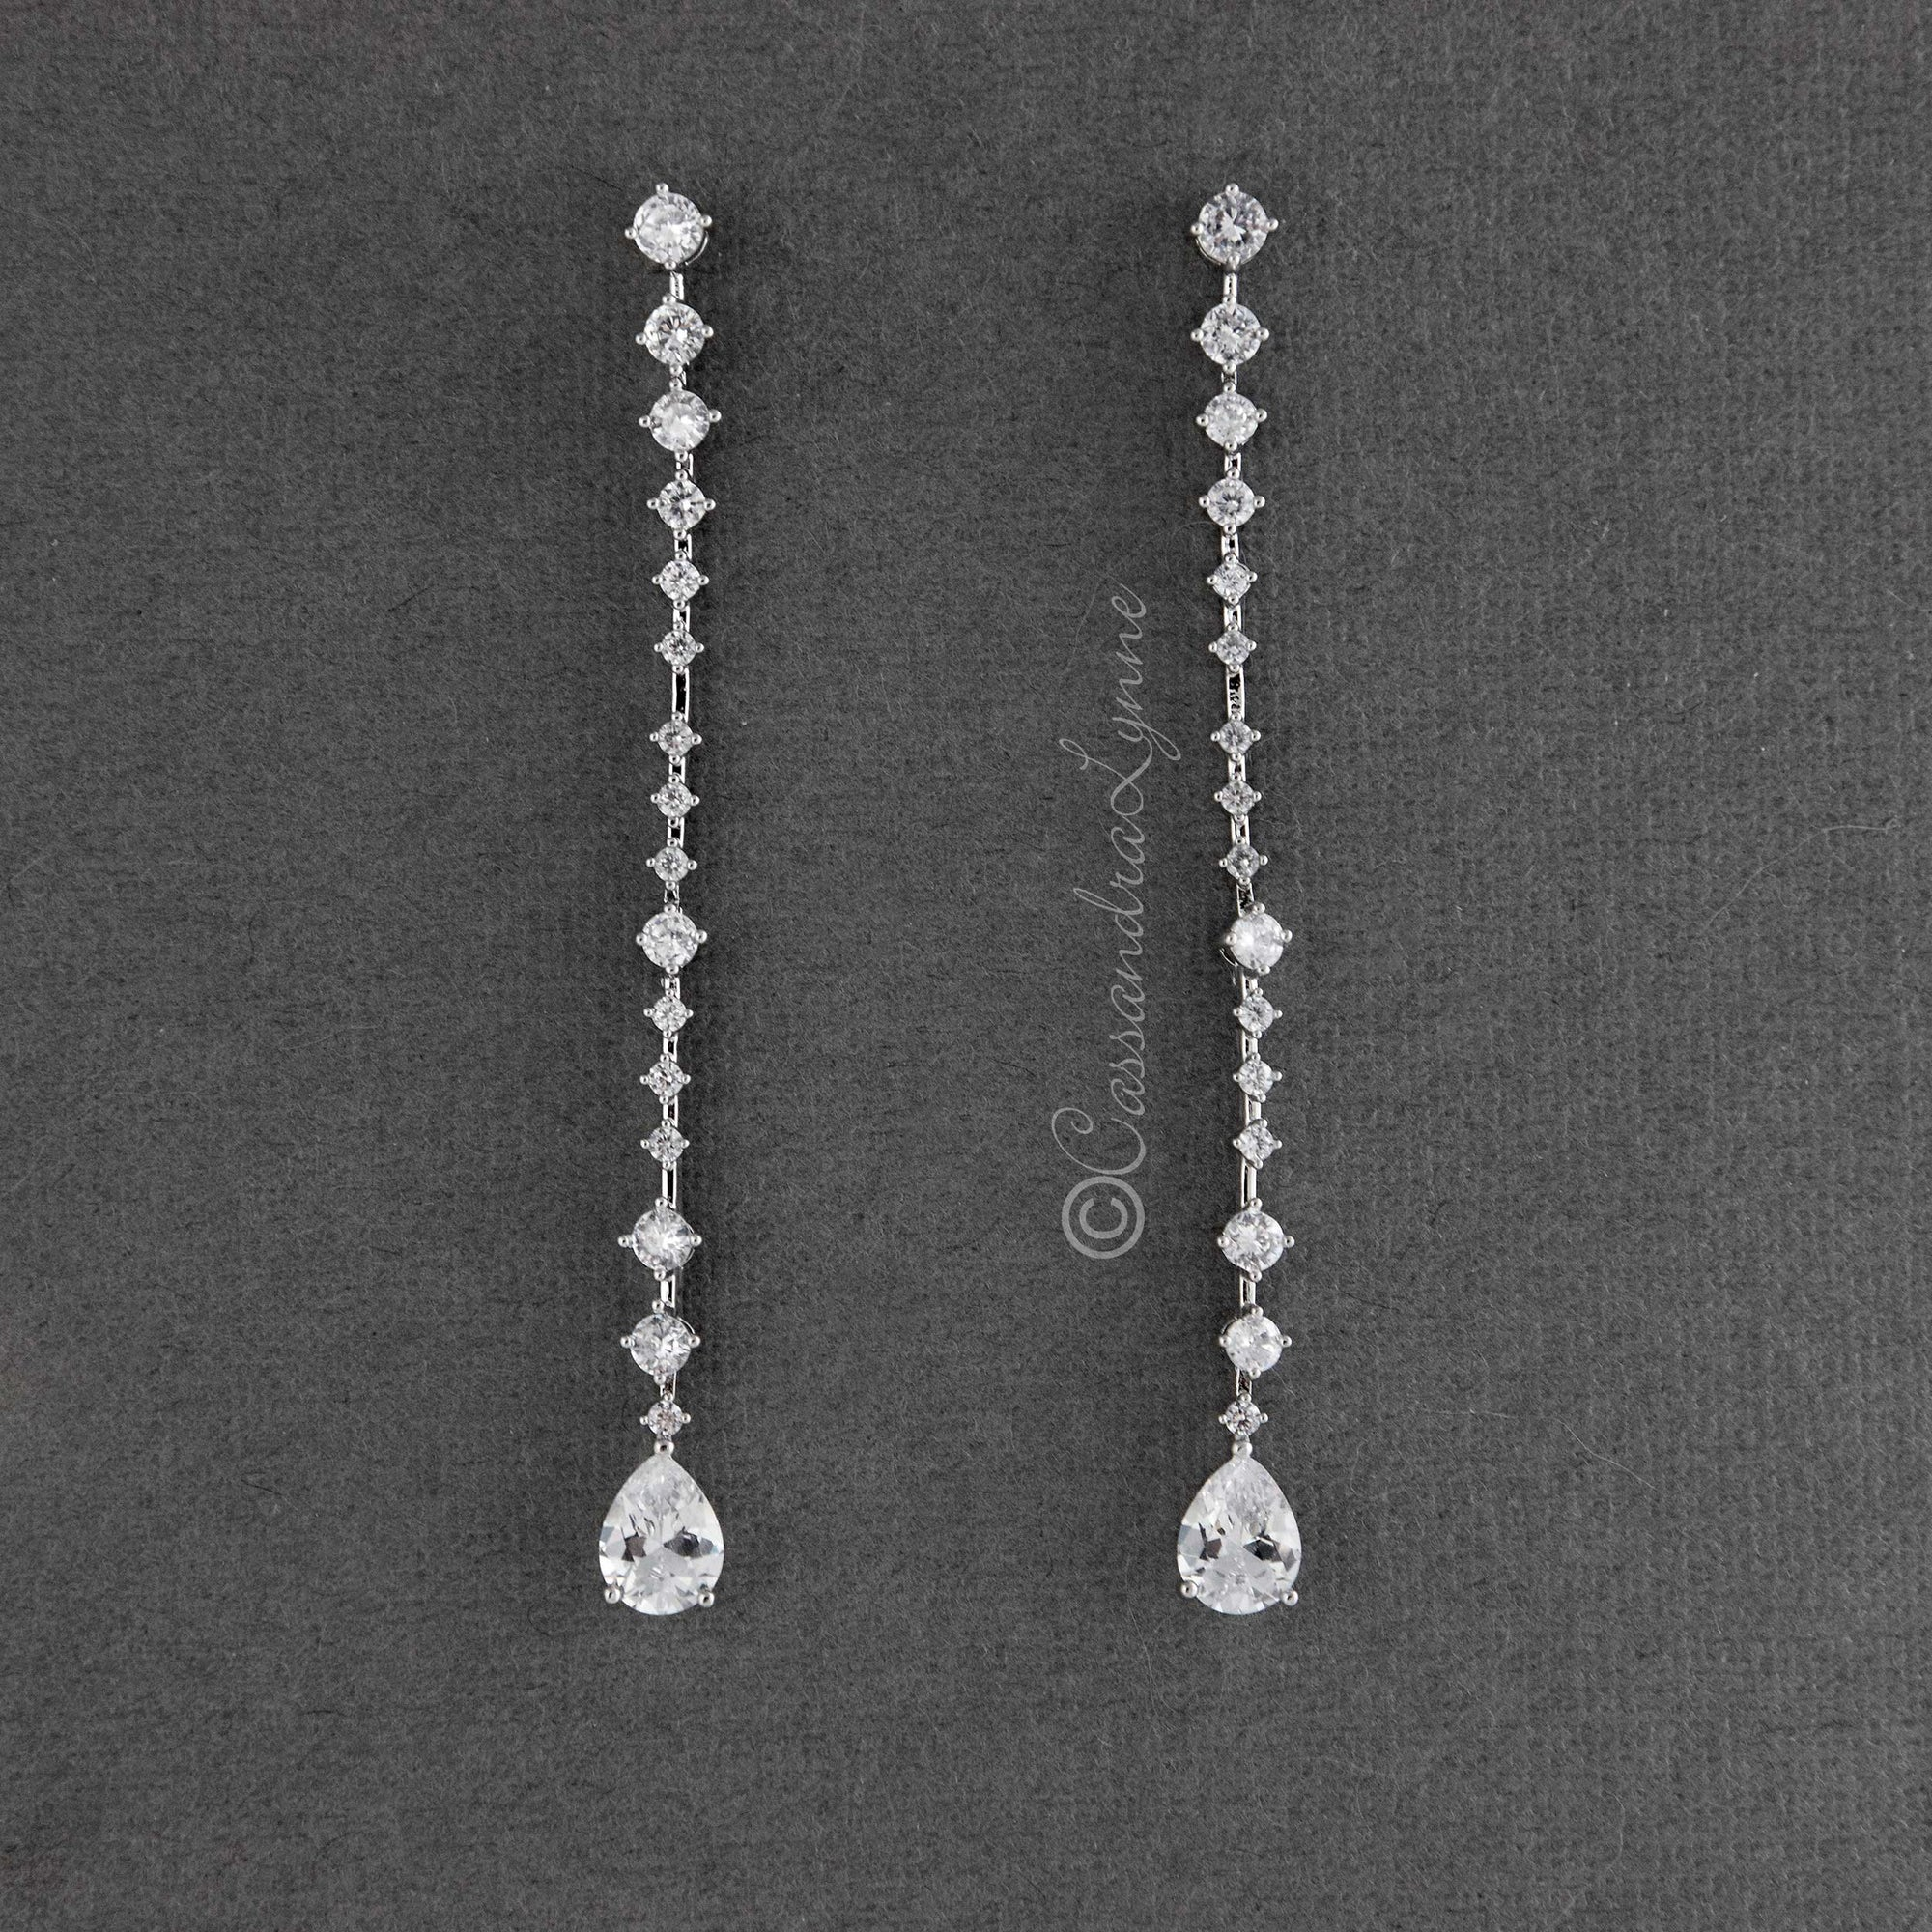 Long CZ Dangle Earrings for the Bride